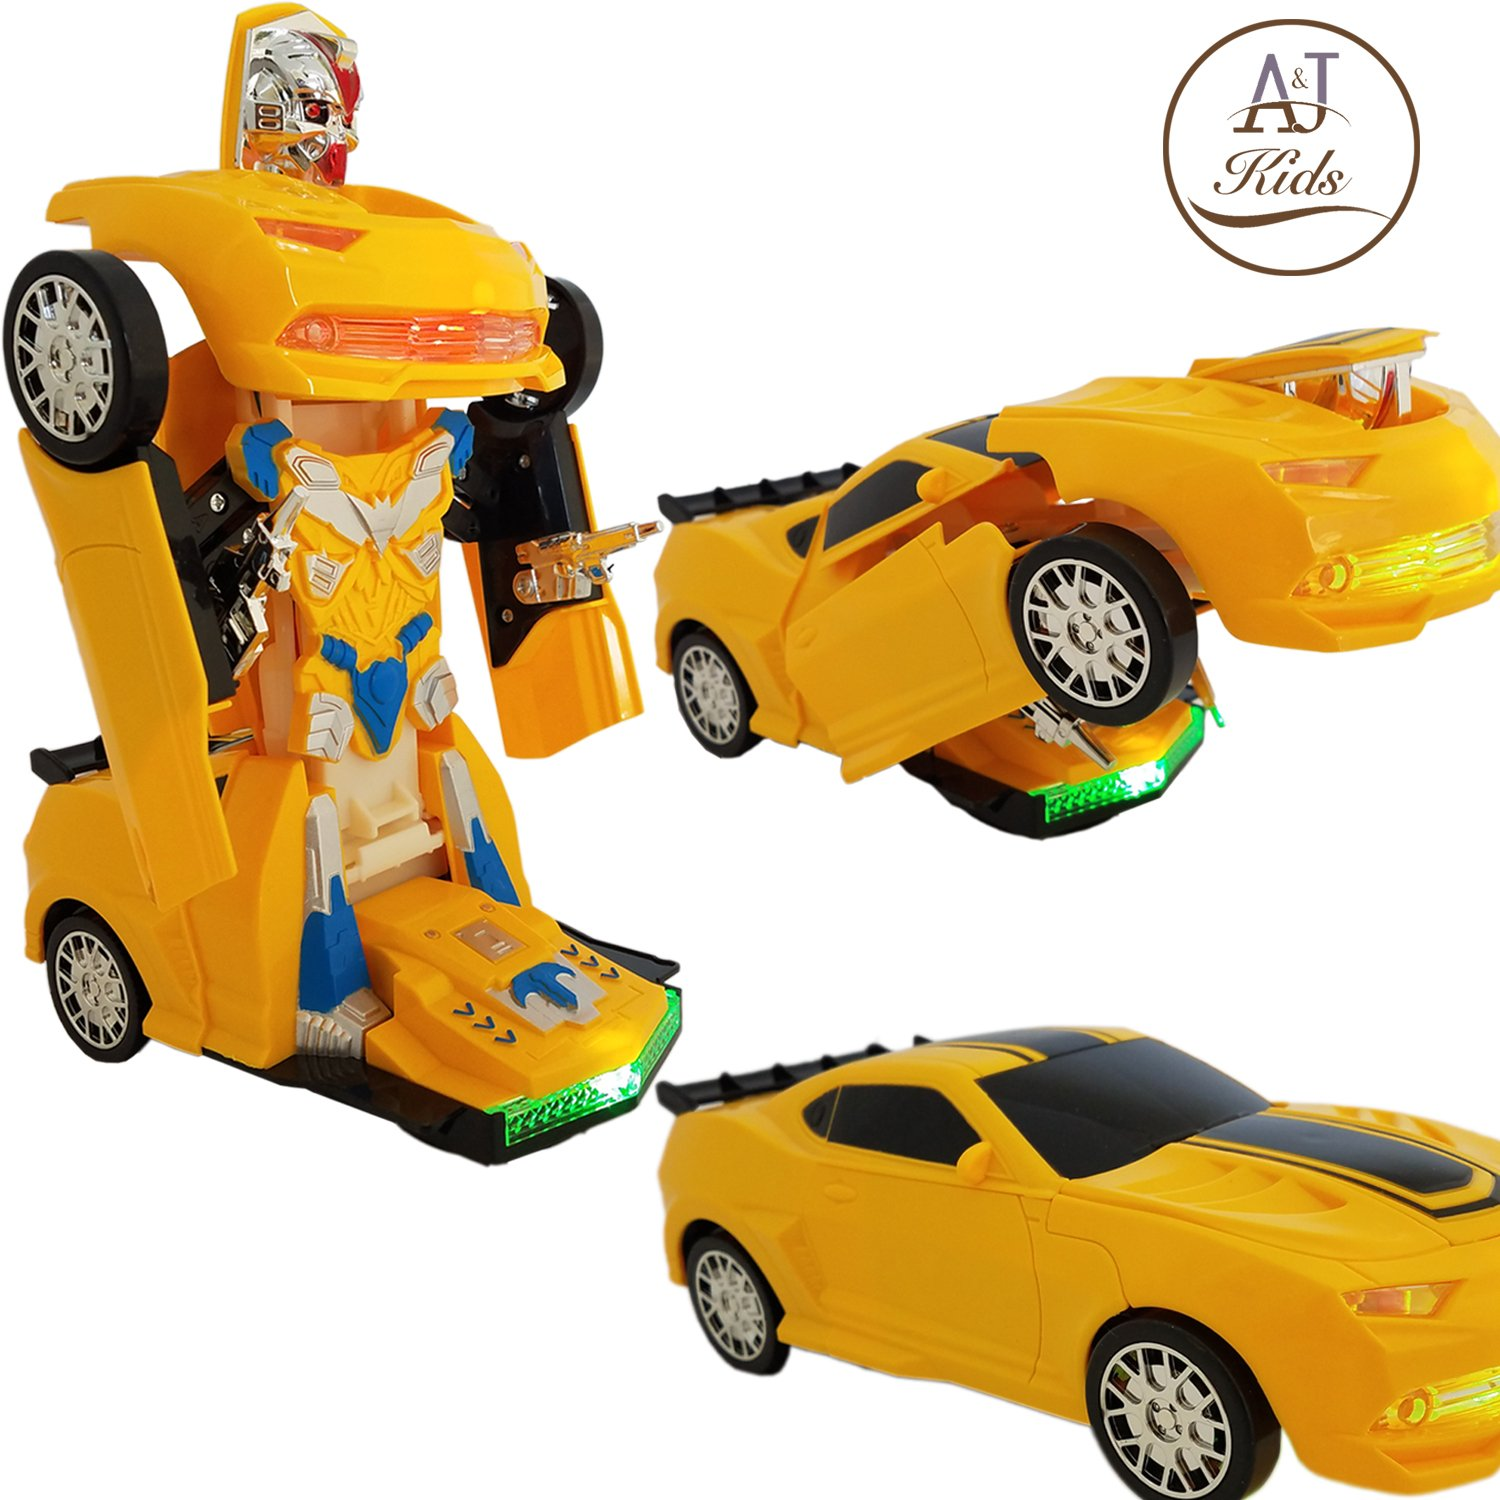 ANJ Kids Toys - Battery Operated Bump and Go Transforming Toys for Kids -Auto Transforming Auto Robots Action Figure and Toy Vehicles - Realistic Engine Sounds & Beautiful Flash Lights ANJ International